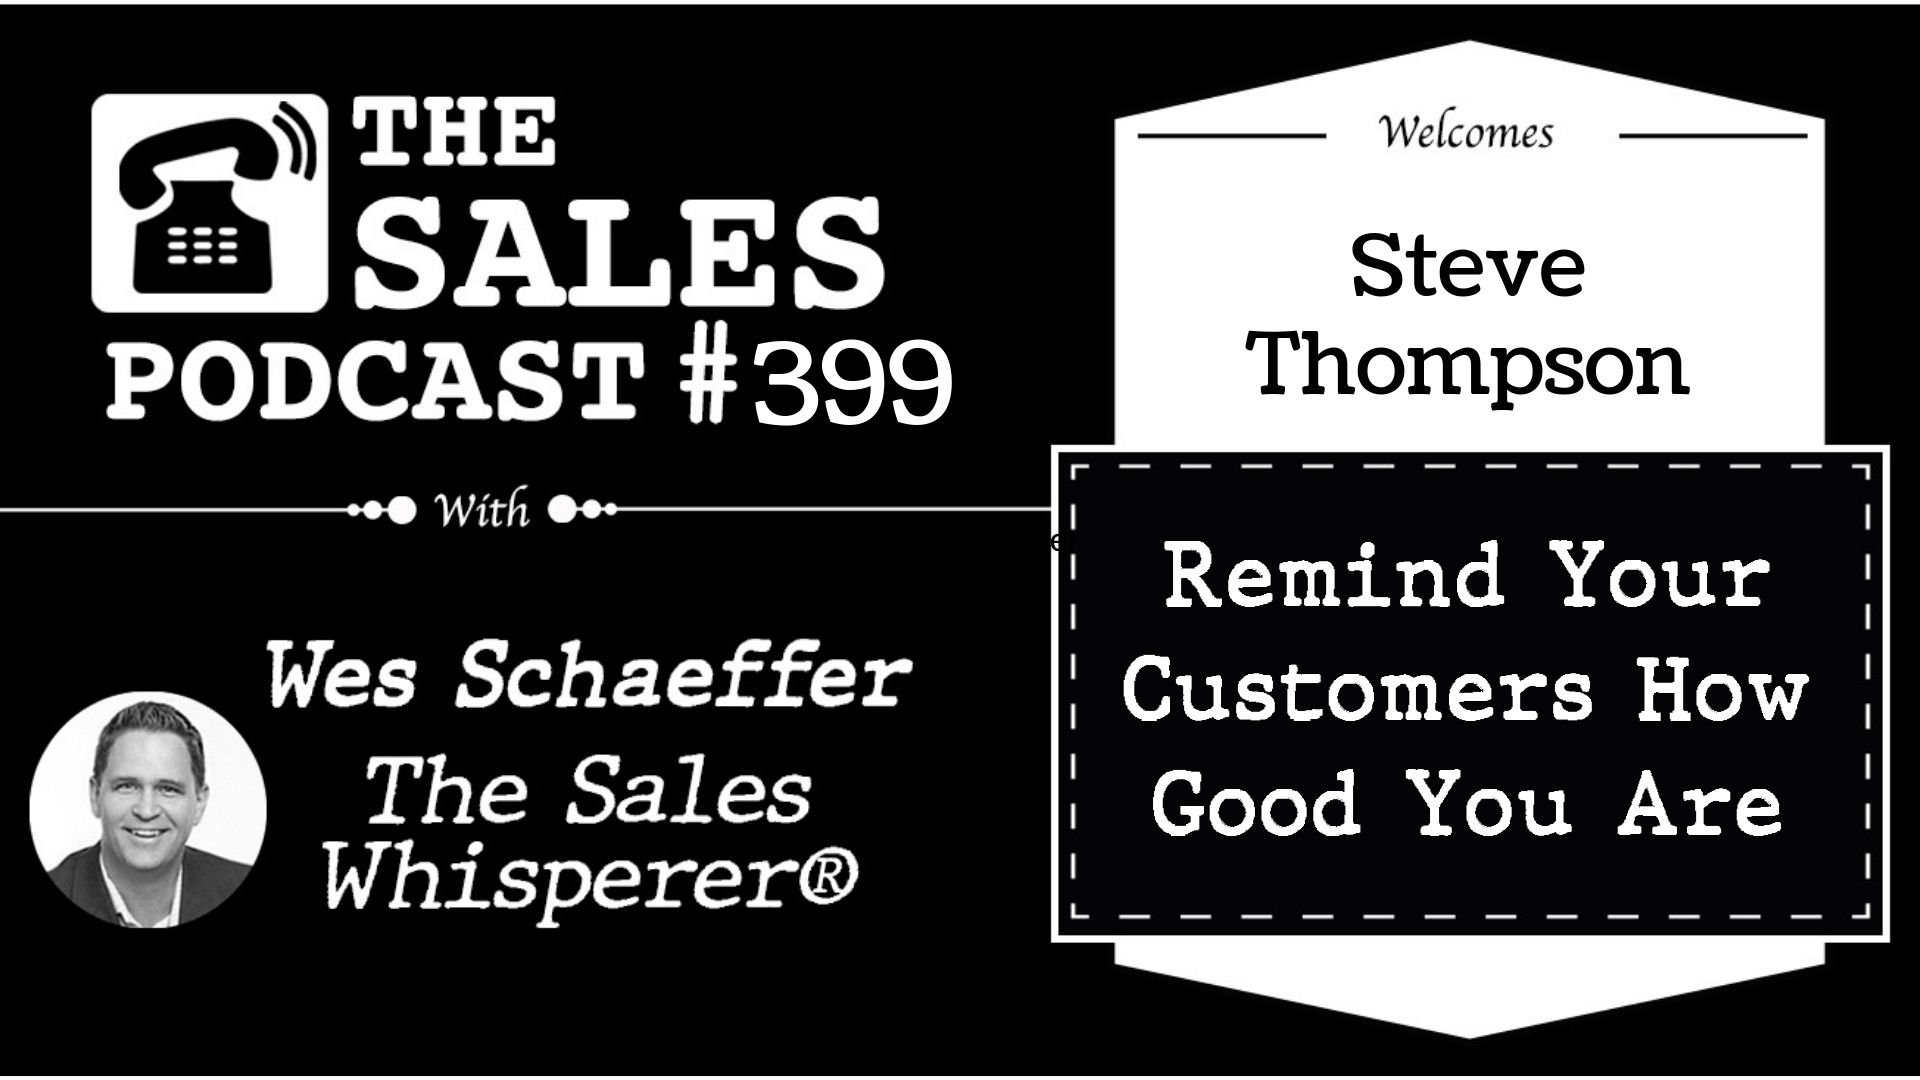 How To Help The Buyer Own The Deal To Make The Sale, With Steve Thompson